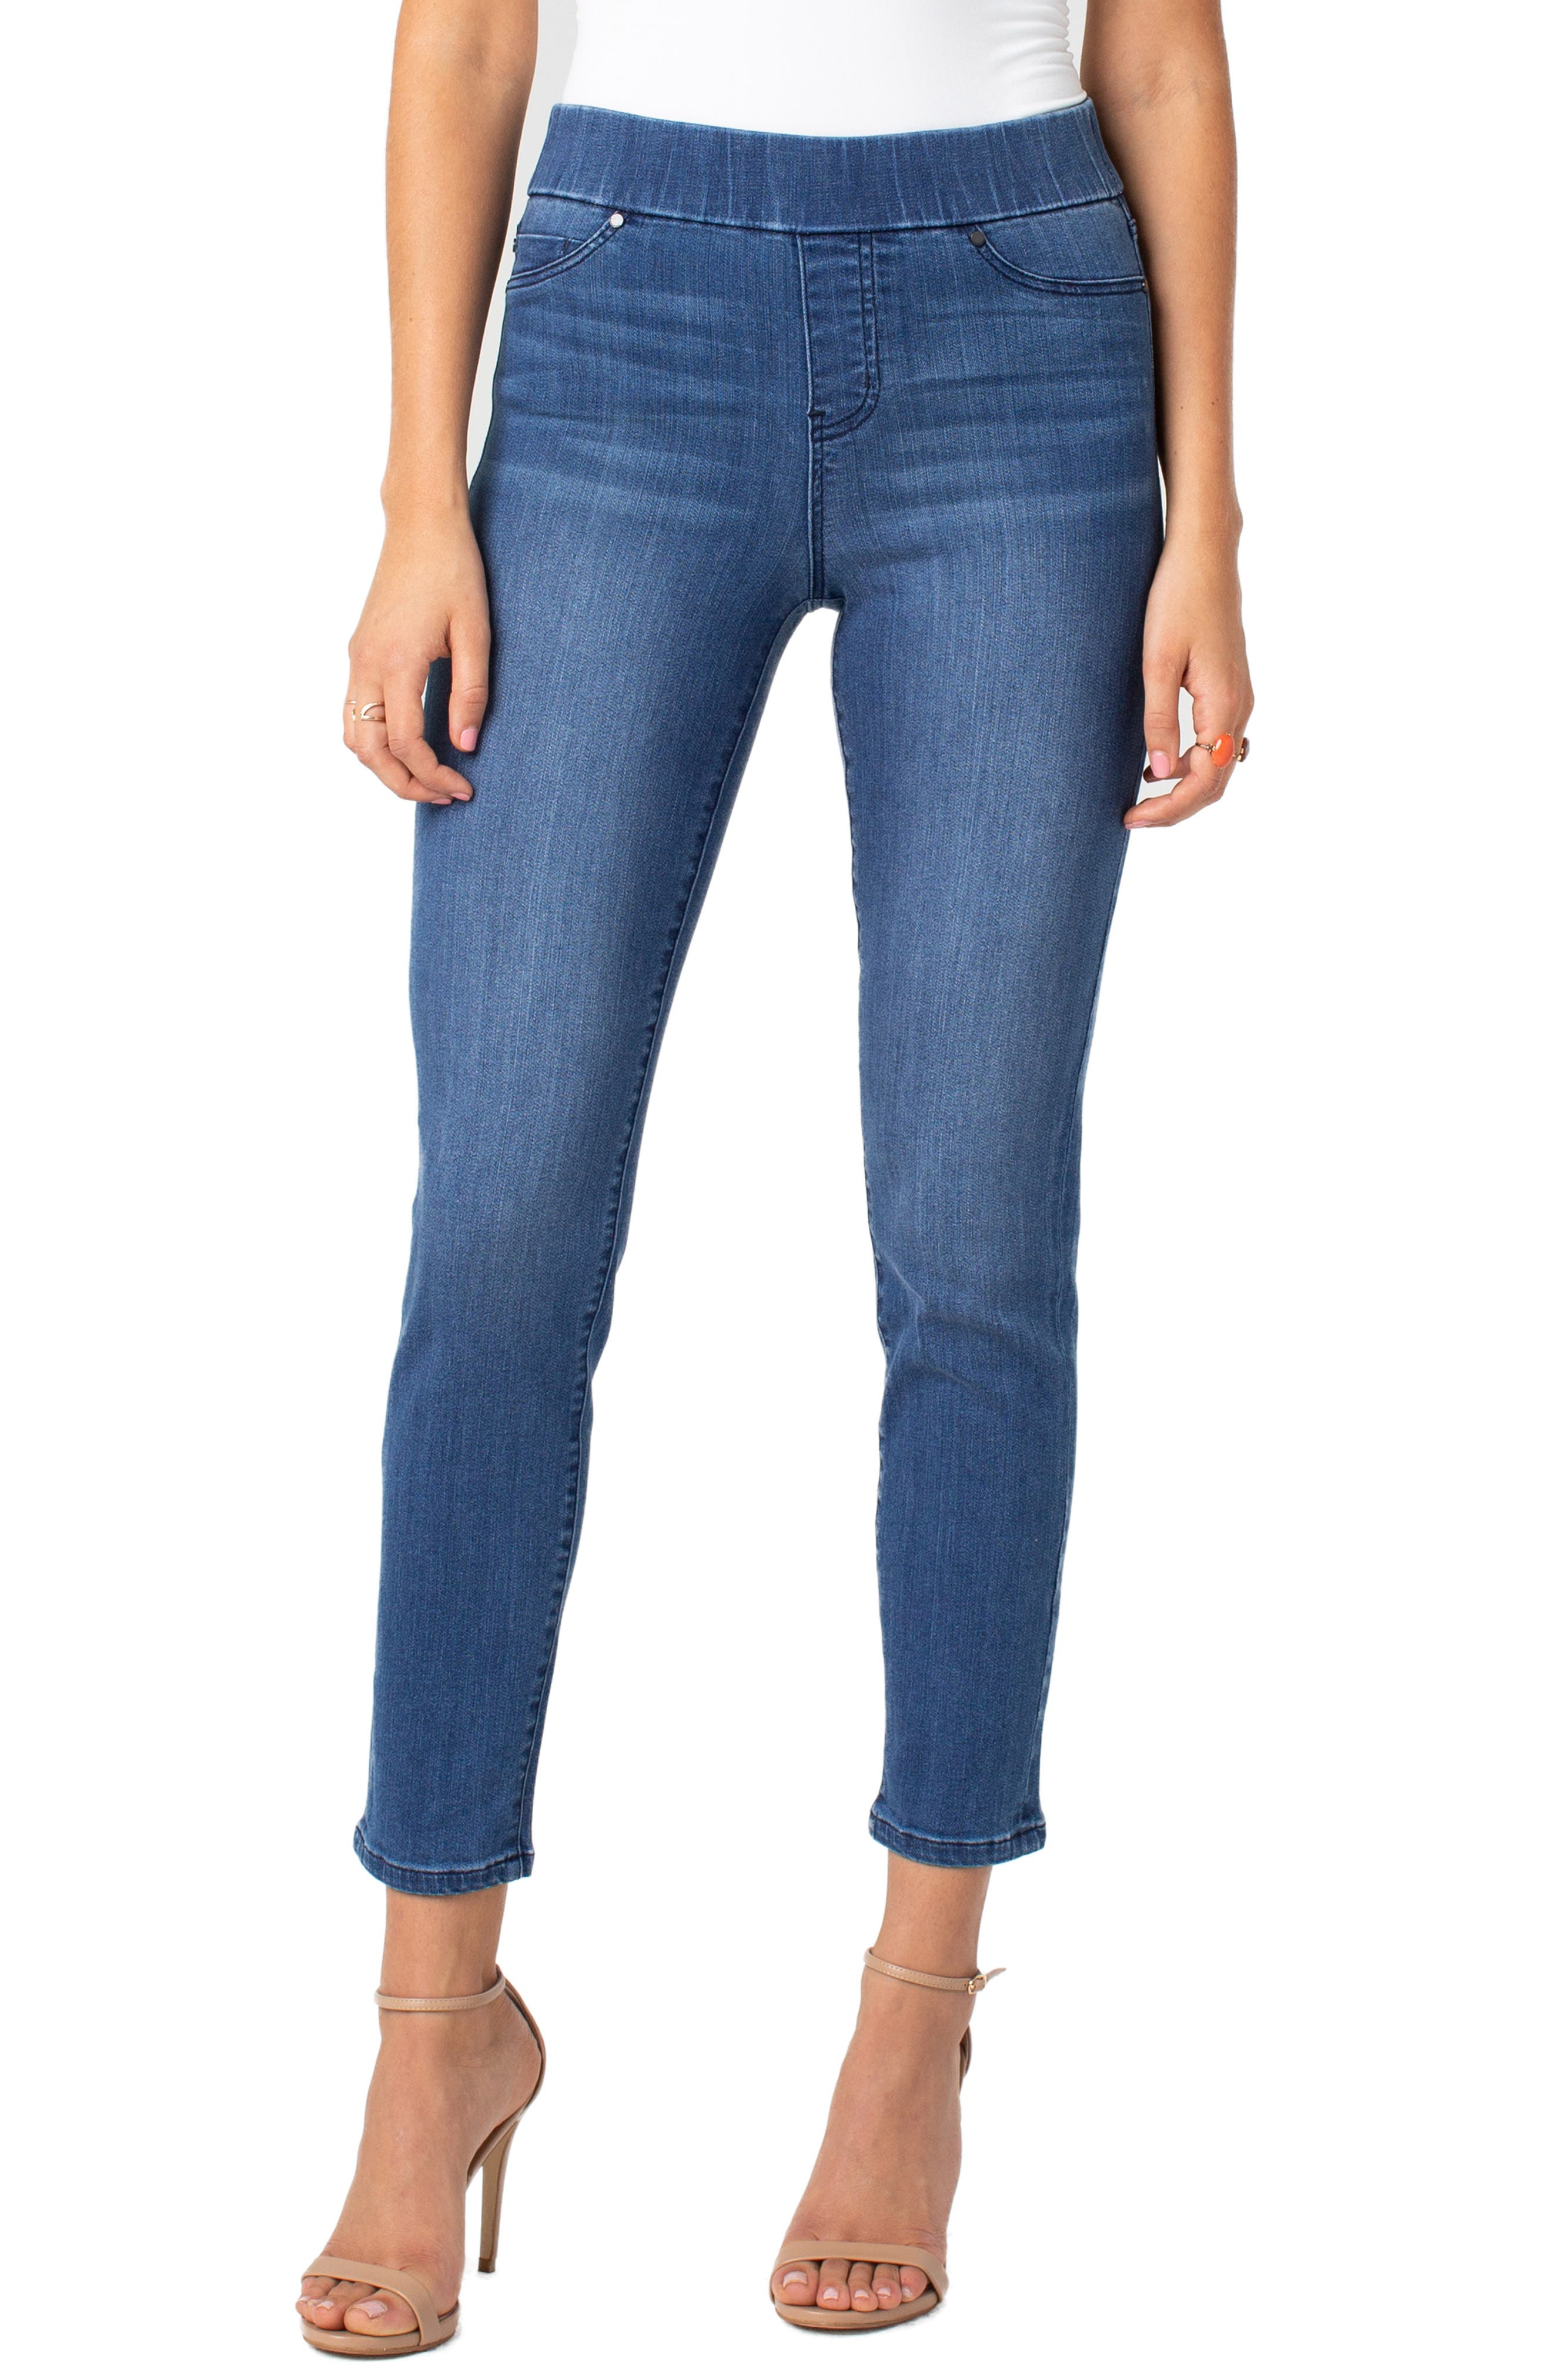 Jeans Company Meridith Pull-On Slim Ankle Jeans,                         Main,                         color, HARLOW